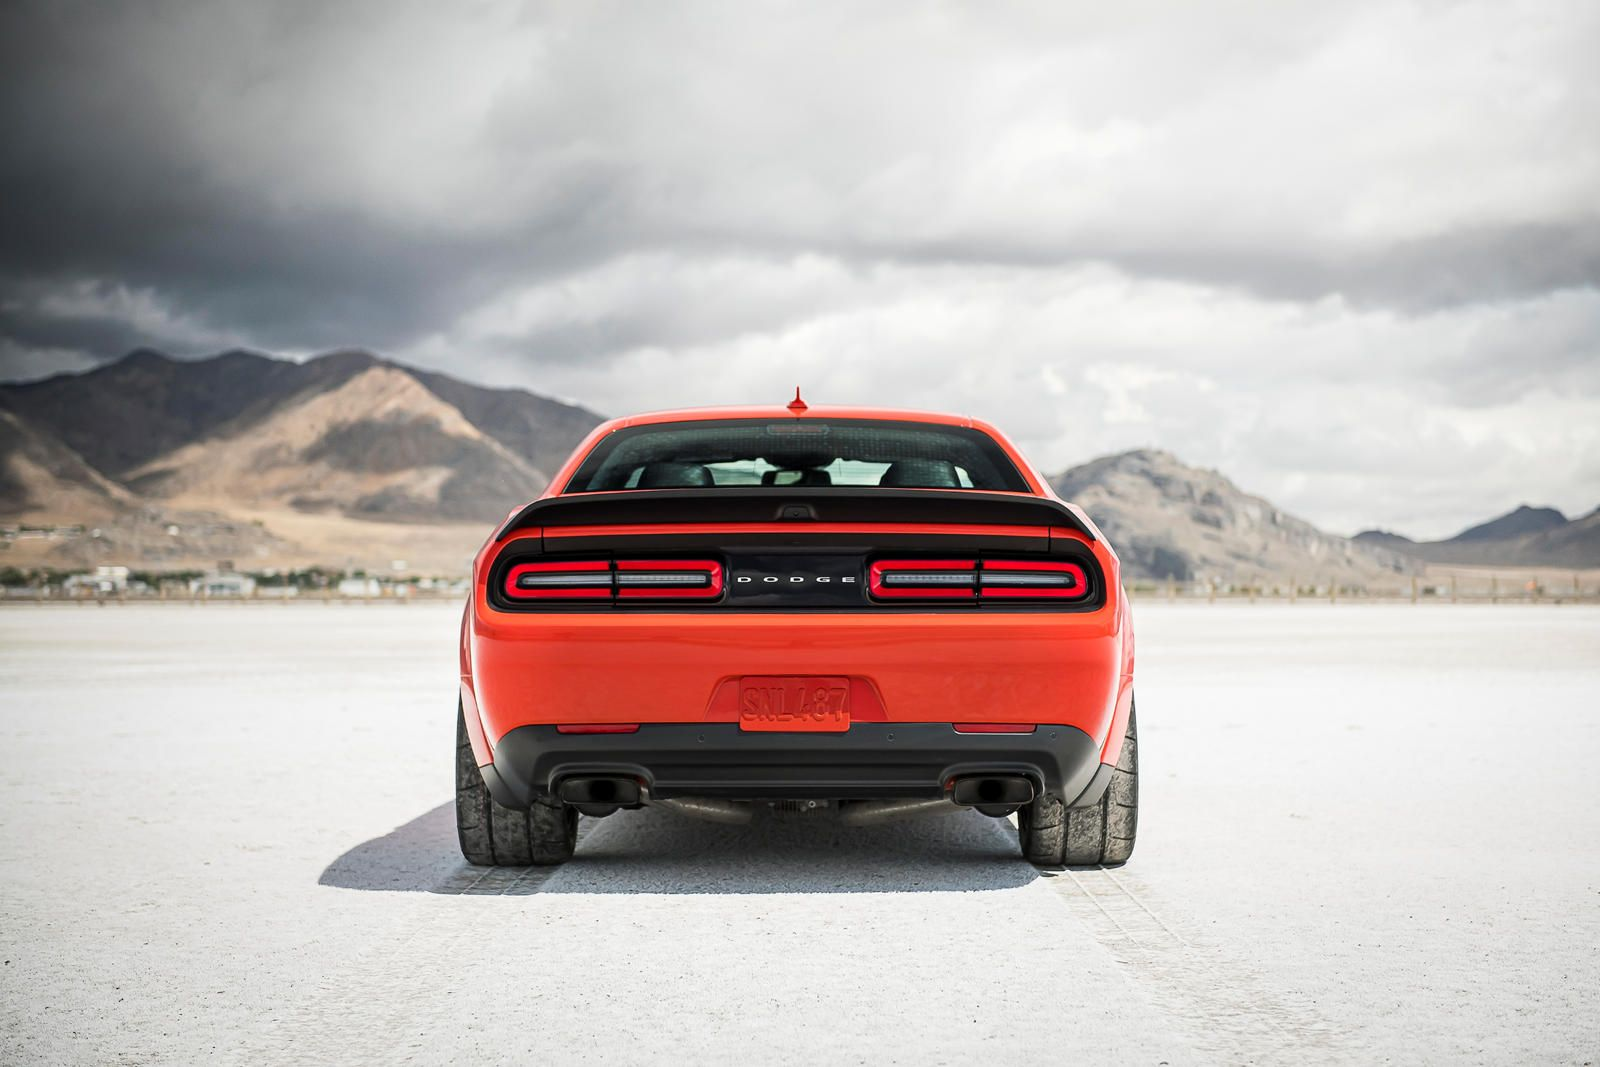 Say Hello To The 2020 Dodge Challenger Srt Super Stock World S Fastest Muscle Car Say Hello To The Dodge Challenger Srt Demon S Spiritual Successor